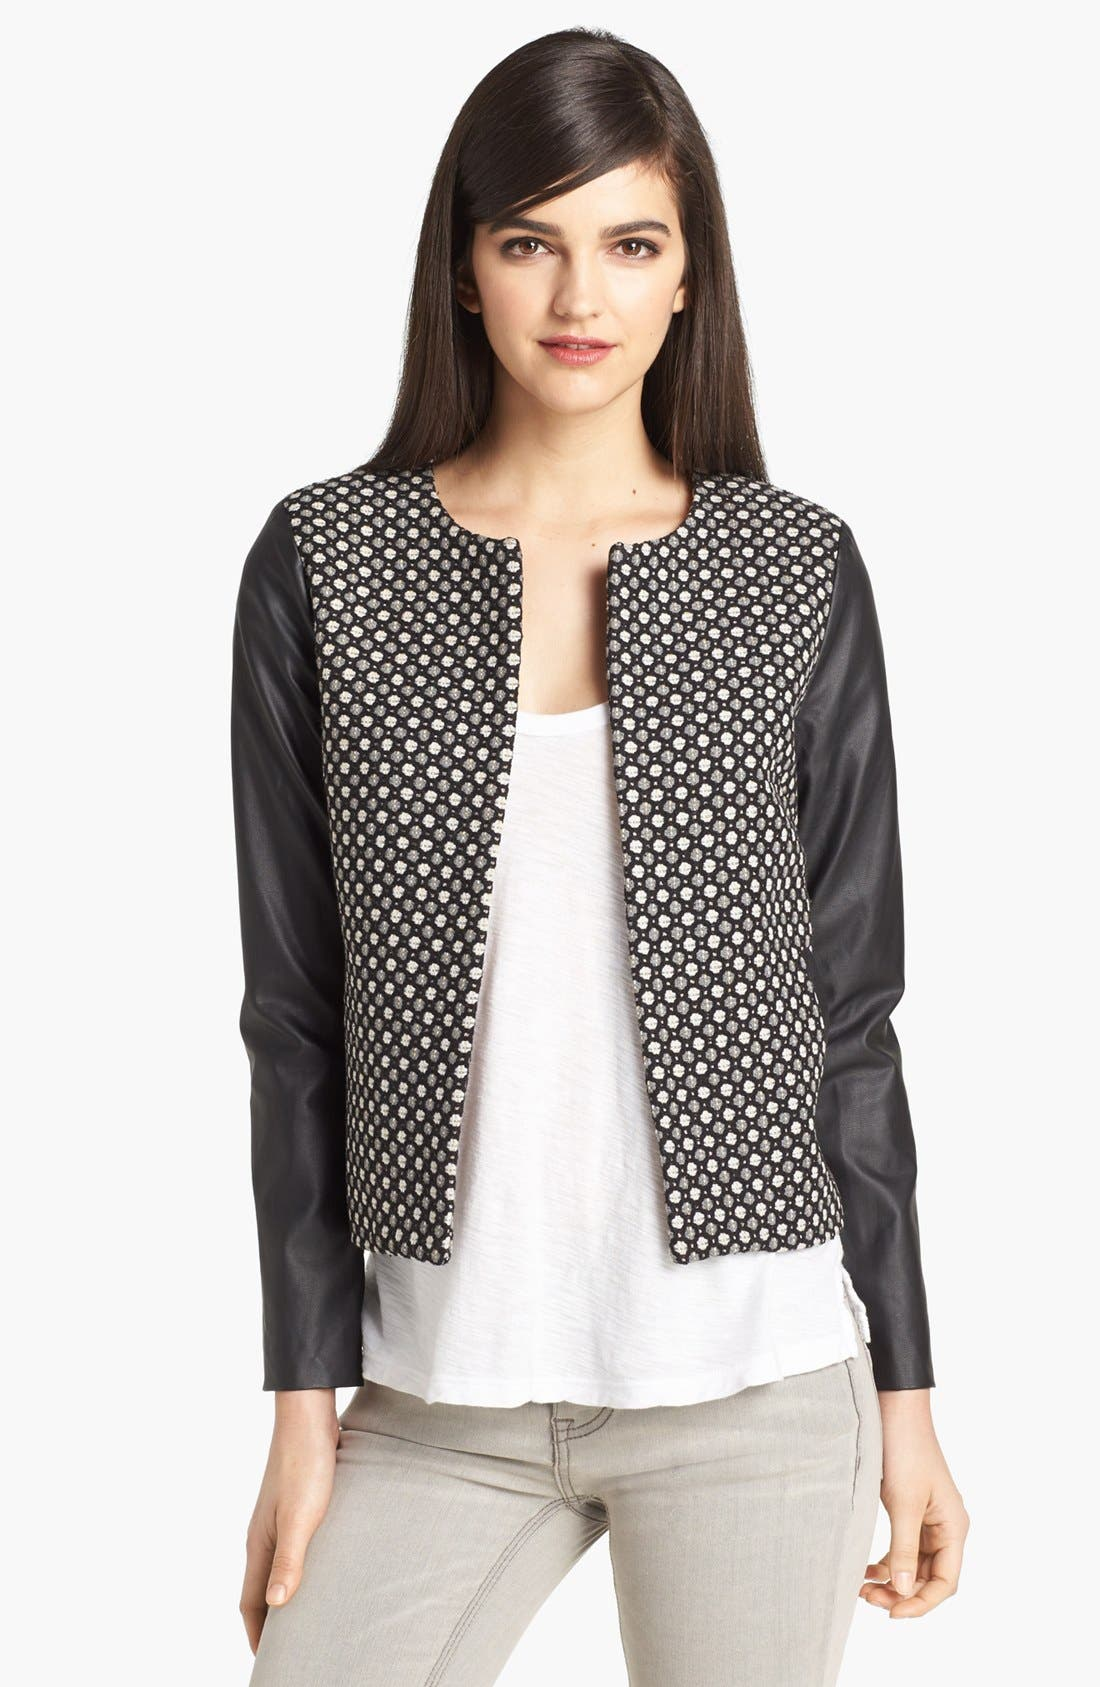 Alternate Image 1 Selected - Pure Sugar Faux Leather Sleeve Jacquard Jacket